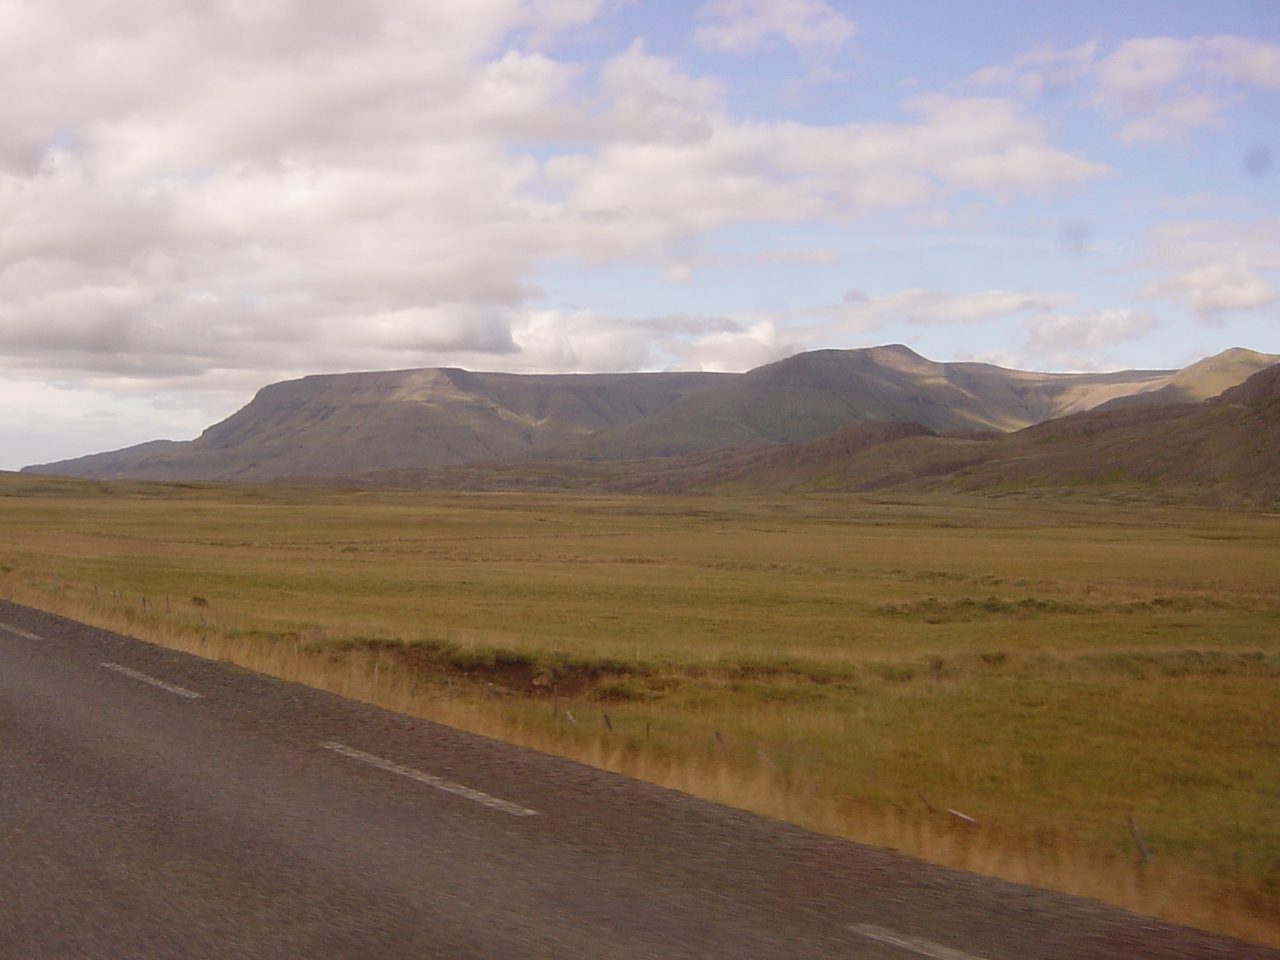 Views from our bus tour. This is tipical Icelandic landscape: flat rocks with a bit of grass or moss. There are harly any bushes or trees (unless imported). In the back the mountains (up to 2400m high!) with glaciers.